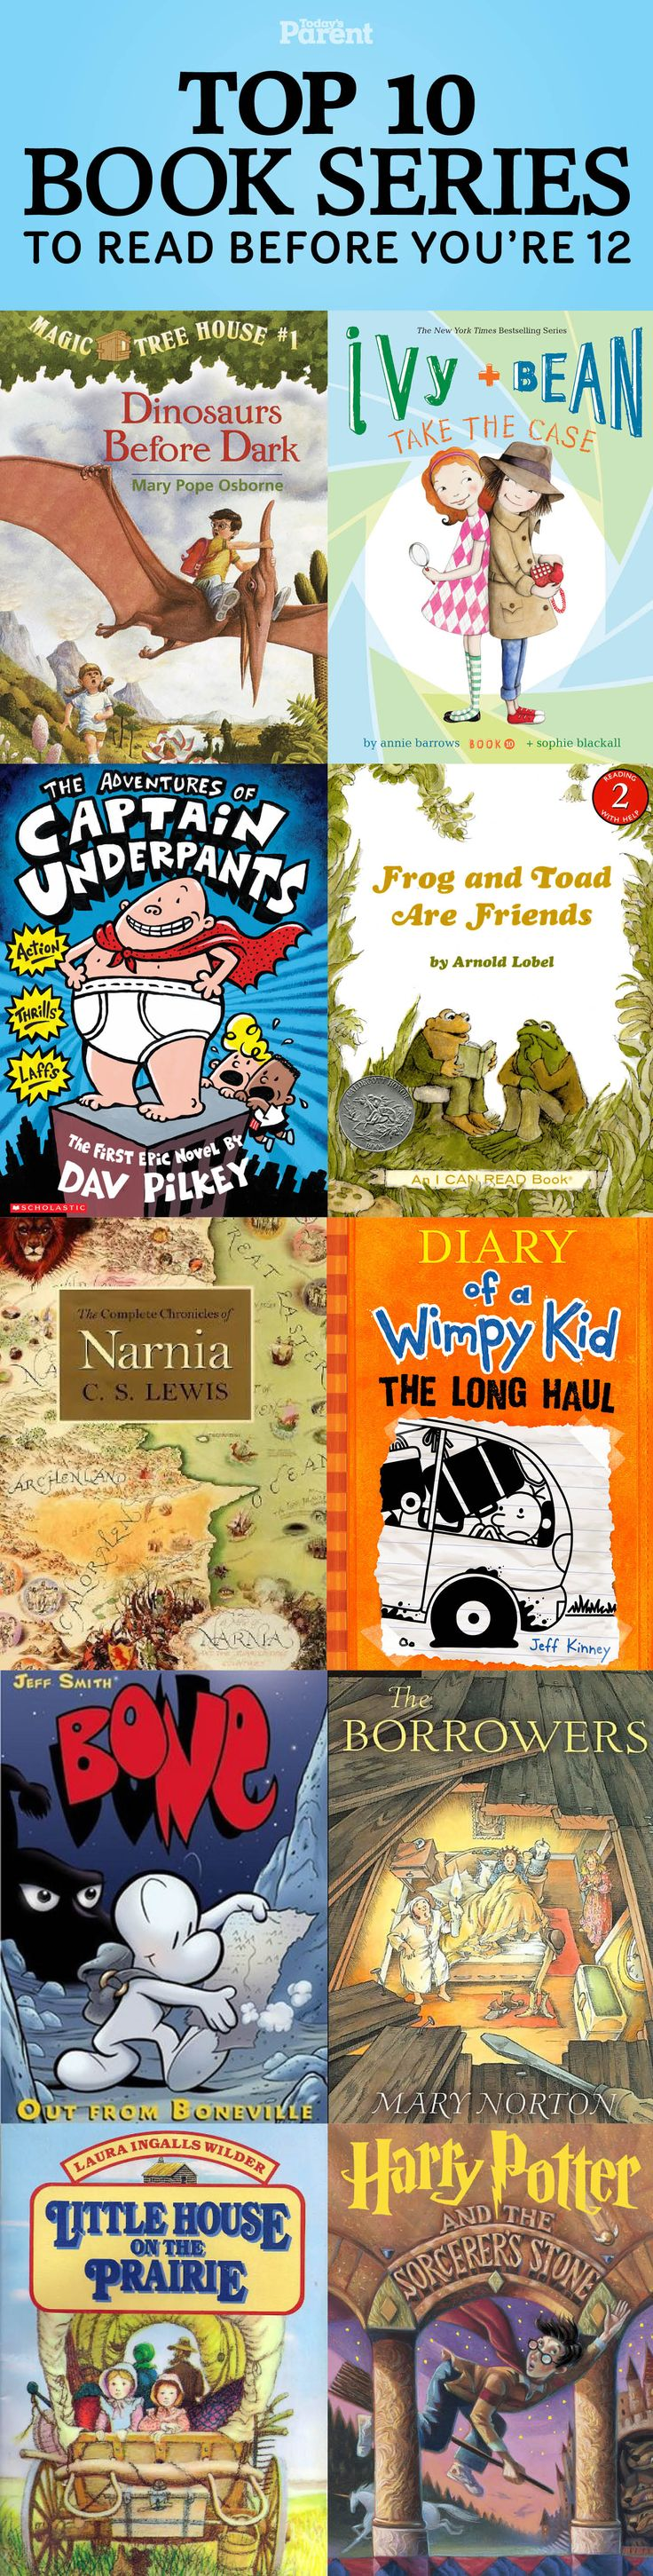 Time for chapter books? These book series will hook young readers.